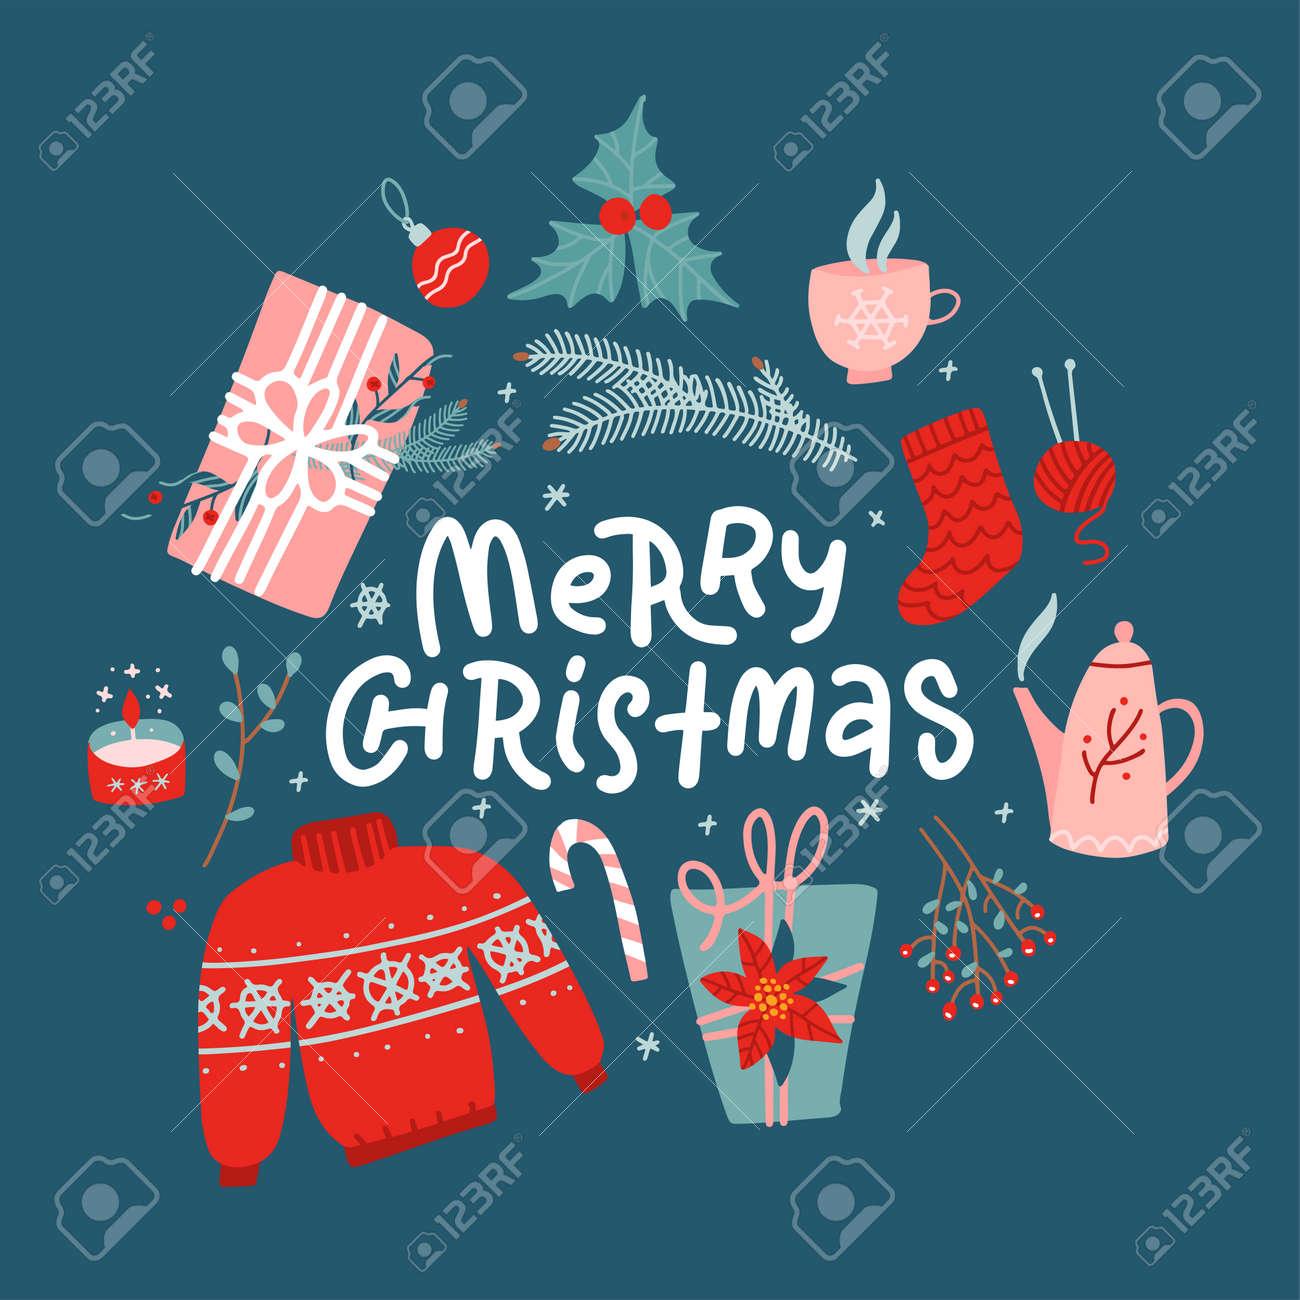 Merry Christmas concept. New Year toys, gifts, sweater - top view and text. Postcard, banner, printed matter, greeting card. Flat vector design. - 158541937